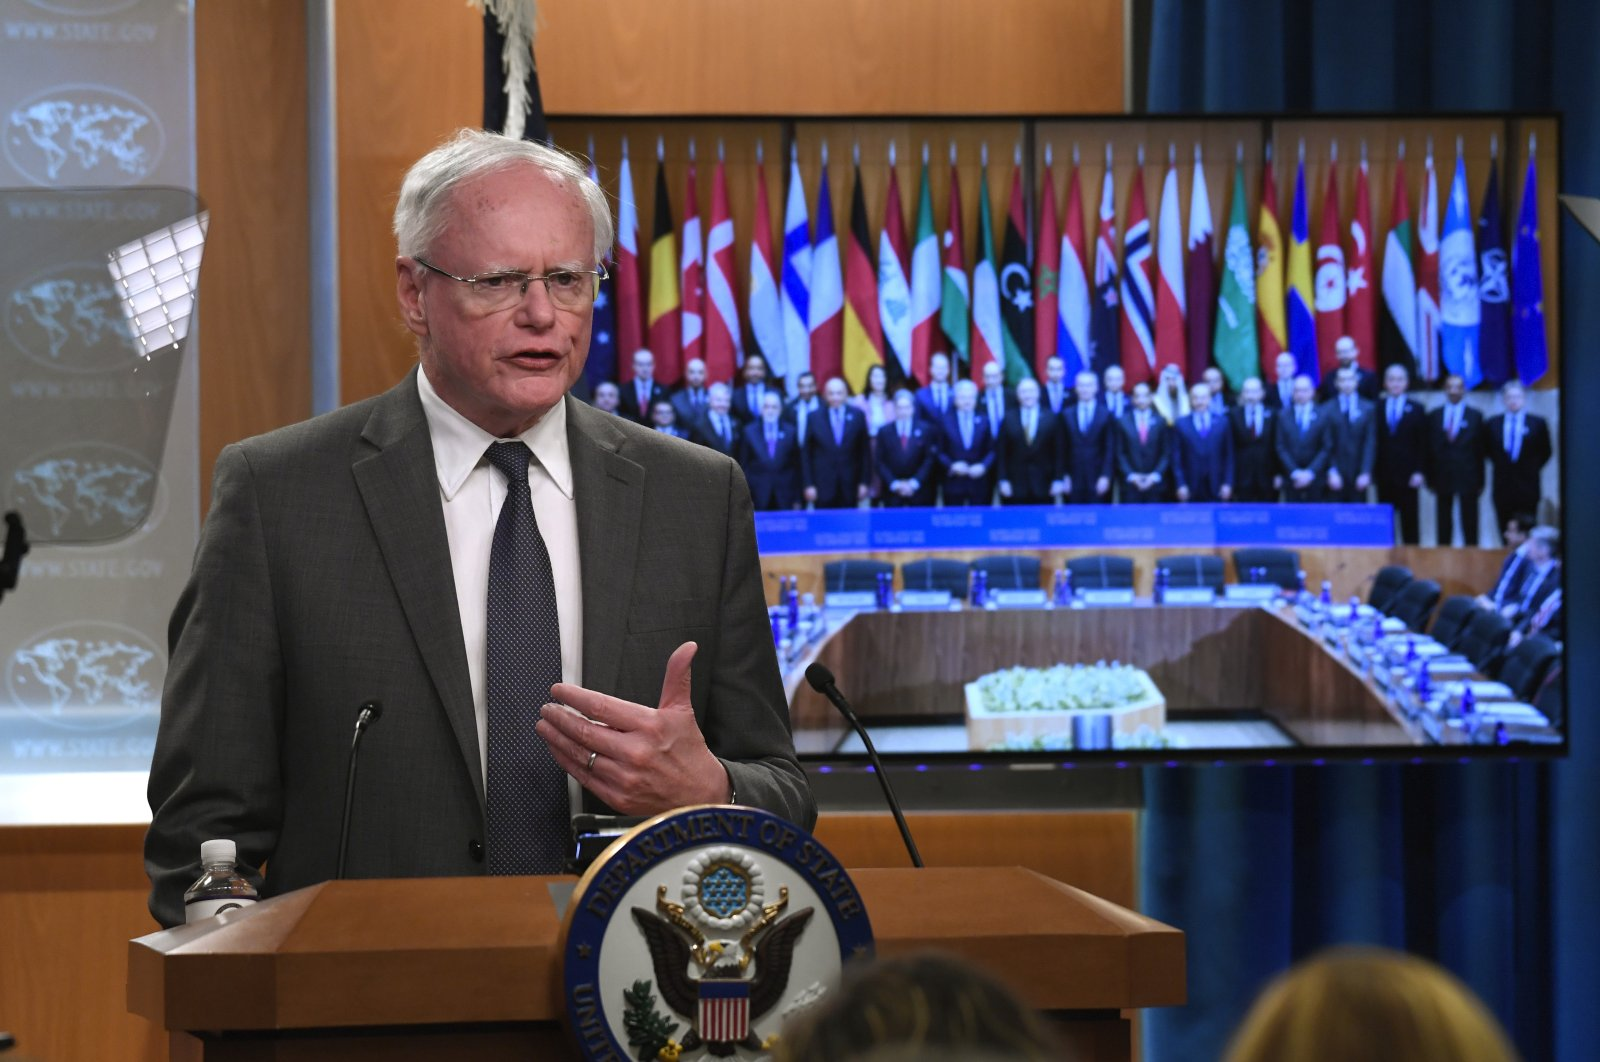 The U.S.' former envoy to Syria James Jeffrey speaks during a news conference at the State Department in Washington, D.C., U.S., Nov. 14, 2019. (AP Photo)